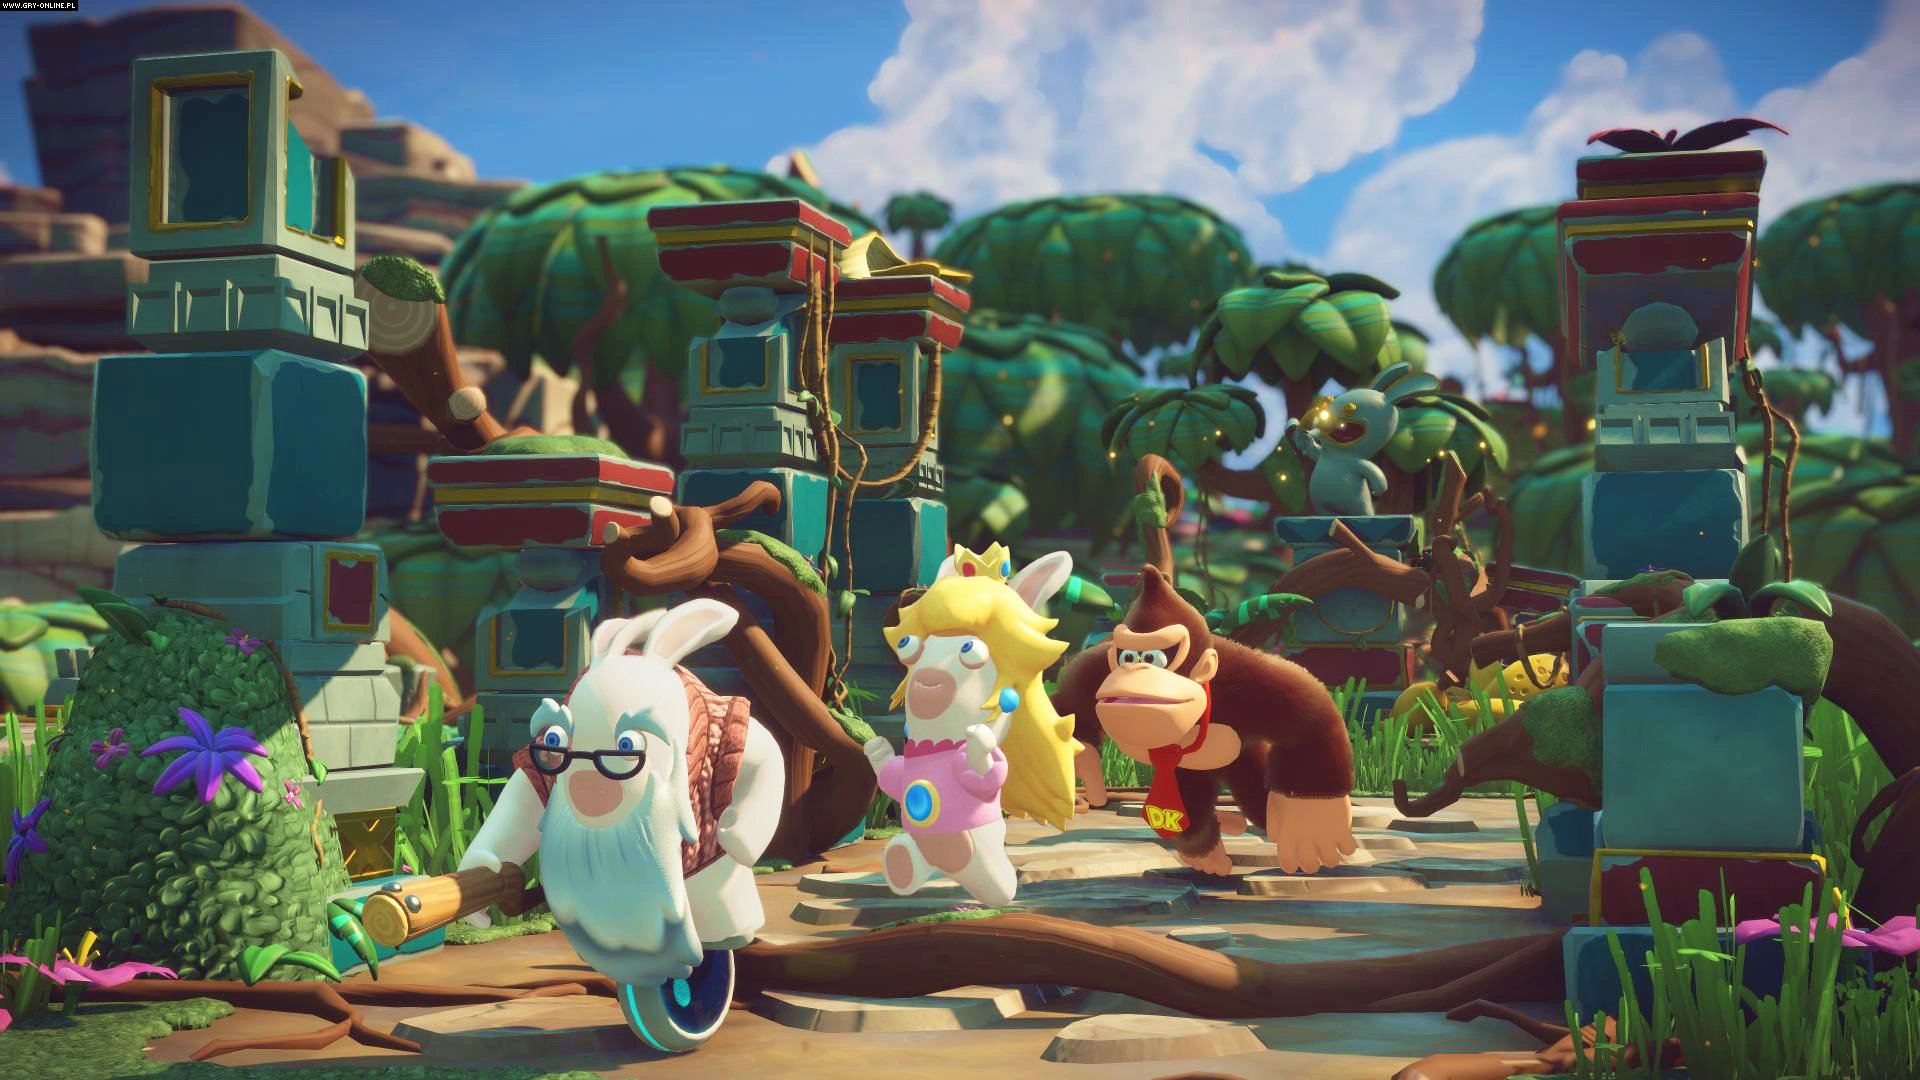 Mario + Rabbids: Kingdom Battle Switch Gry Screen 4/49, Ubisoft